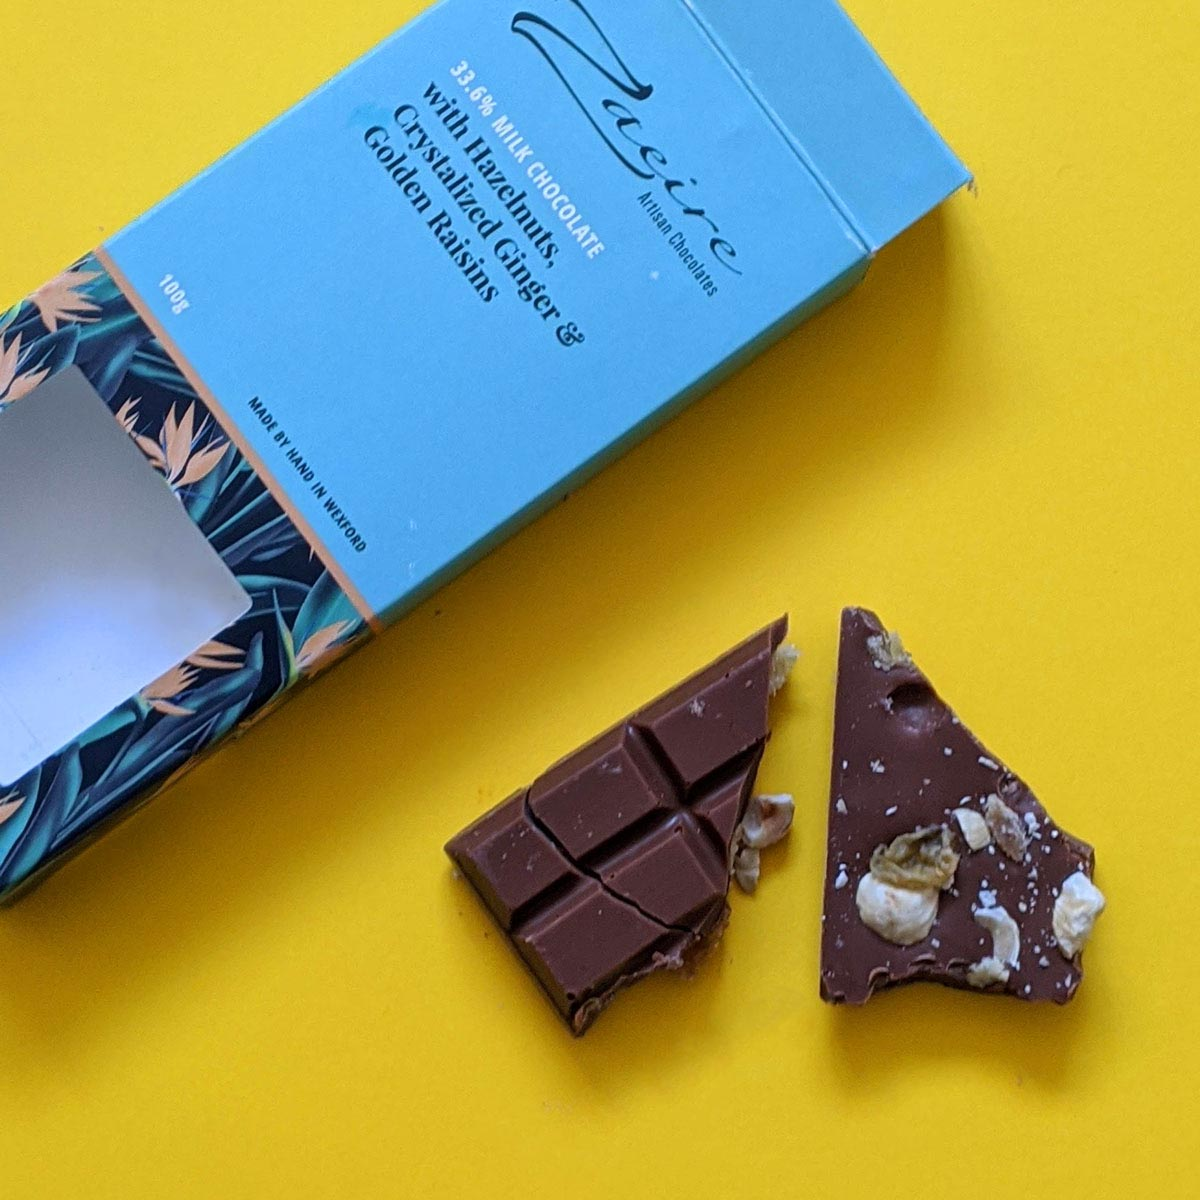 packaging design wexford Zaeire chocolate bars